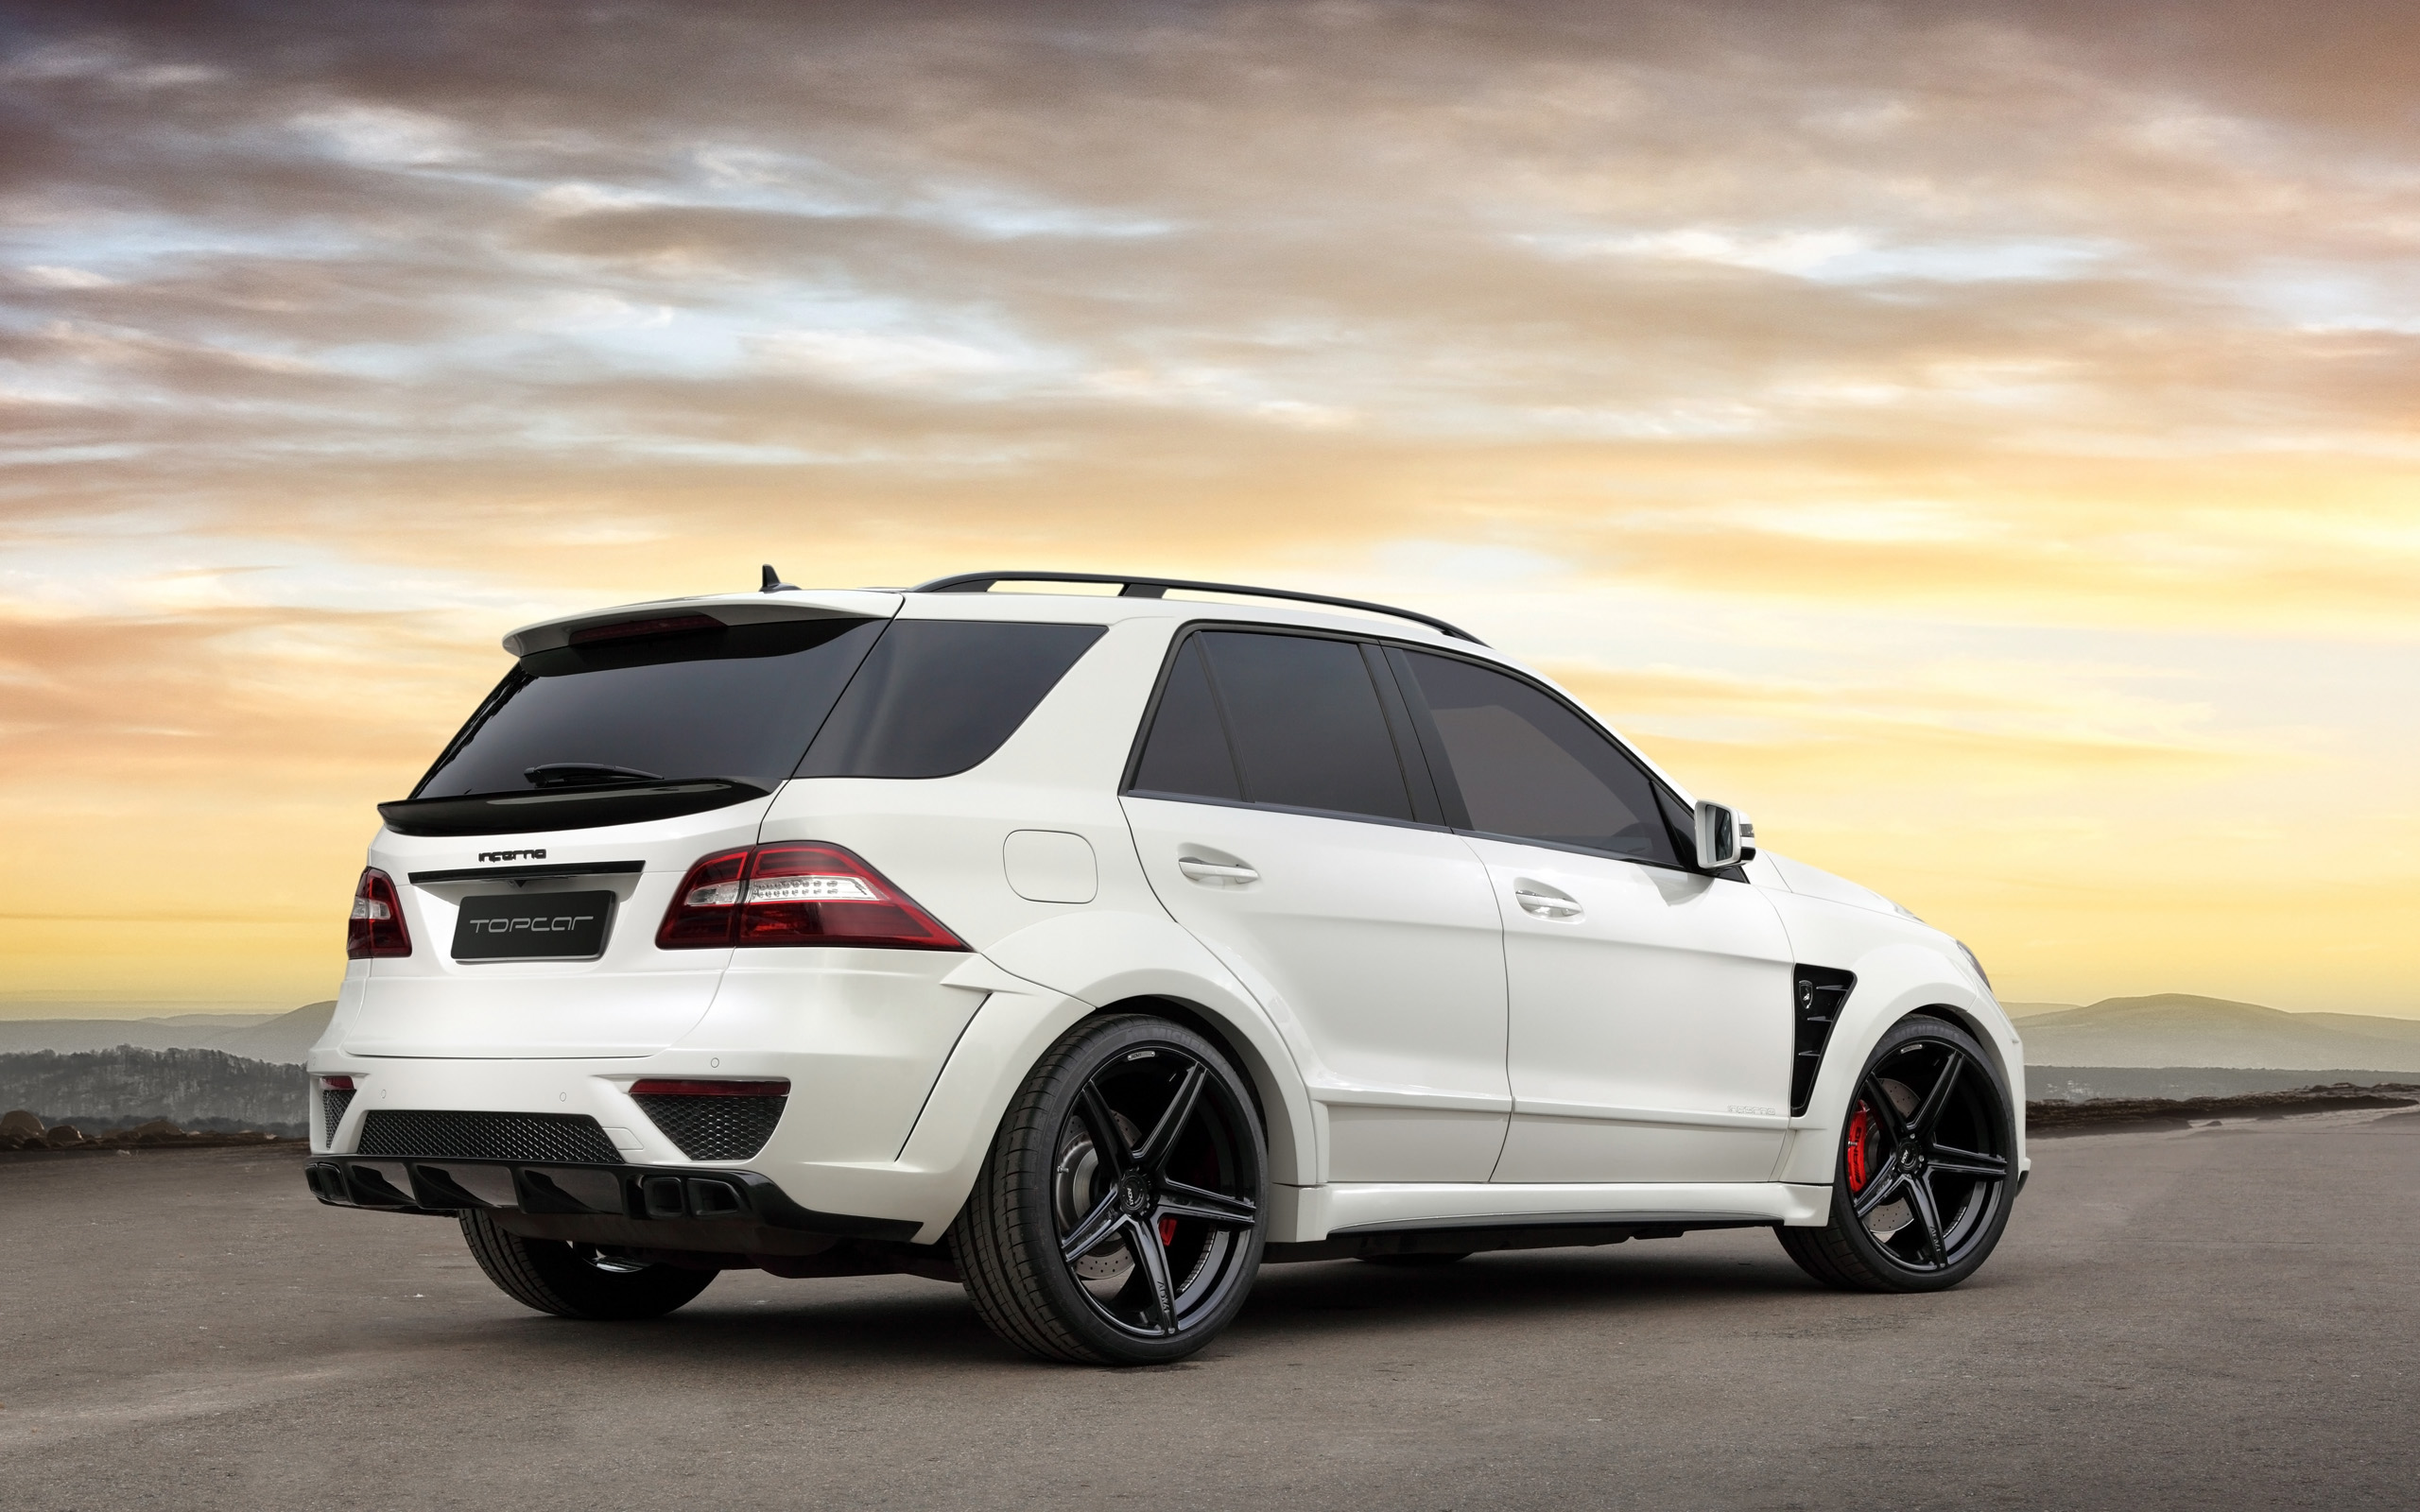 2013 topcar mercedes benz ml 63 amg inferno suv tuning gd wallpaper 2560x1600 139330 wallpaperup